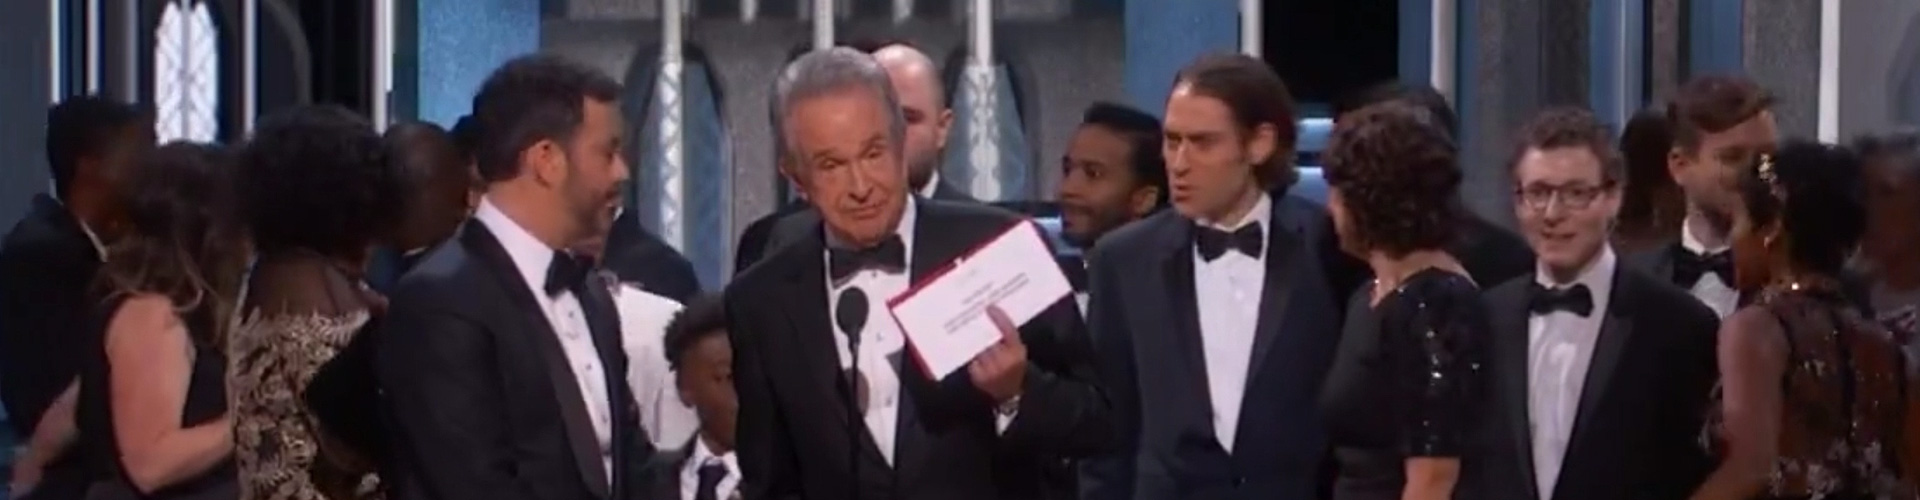 oscars-fail-header.jpg